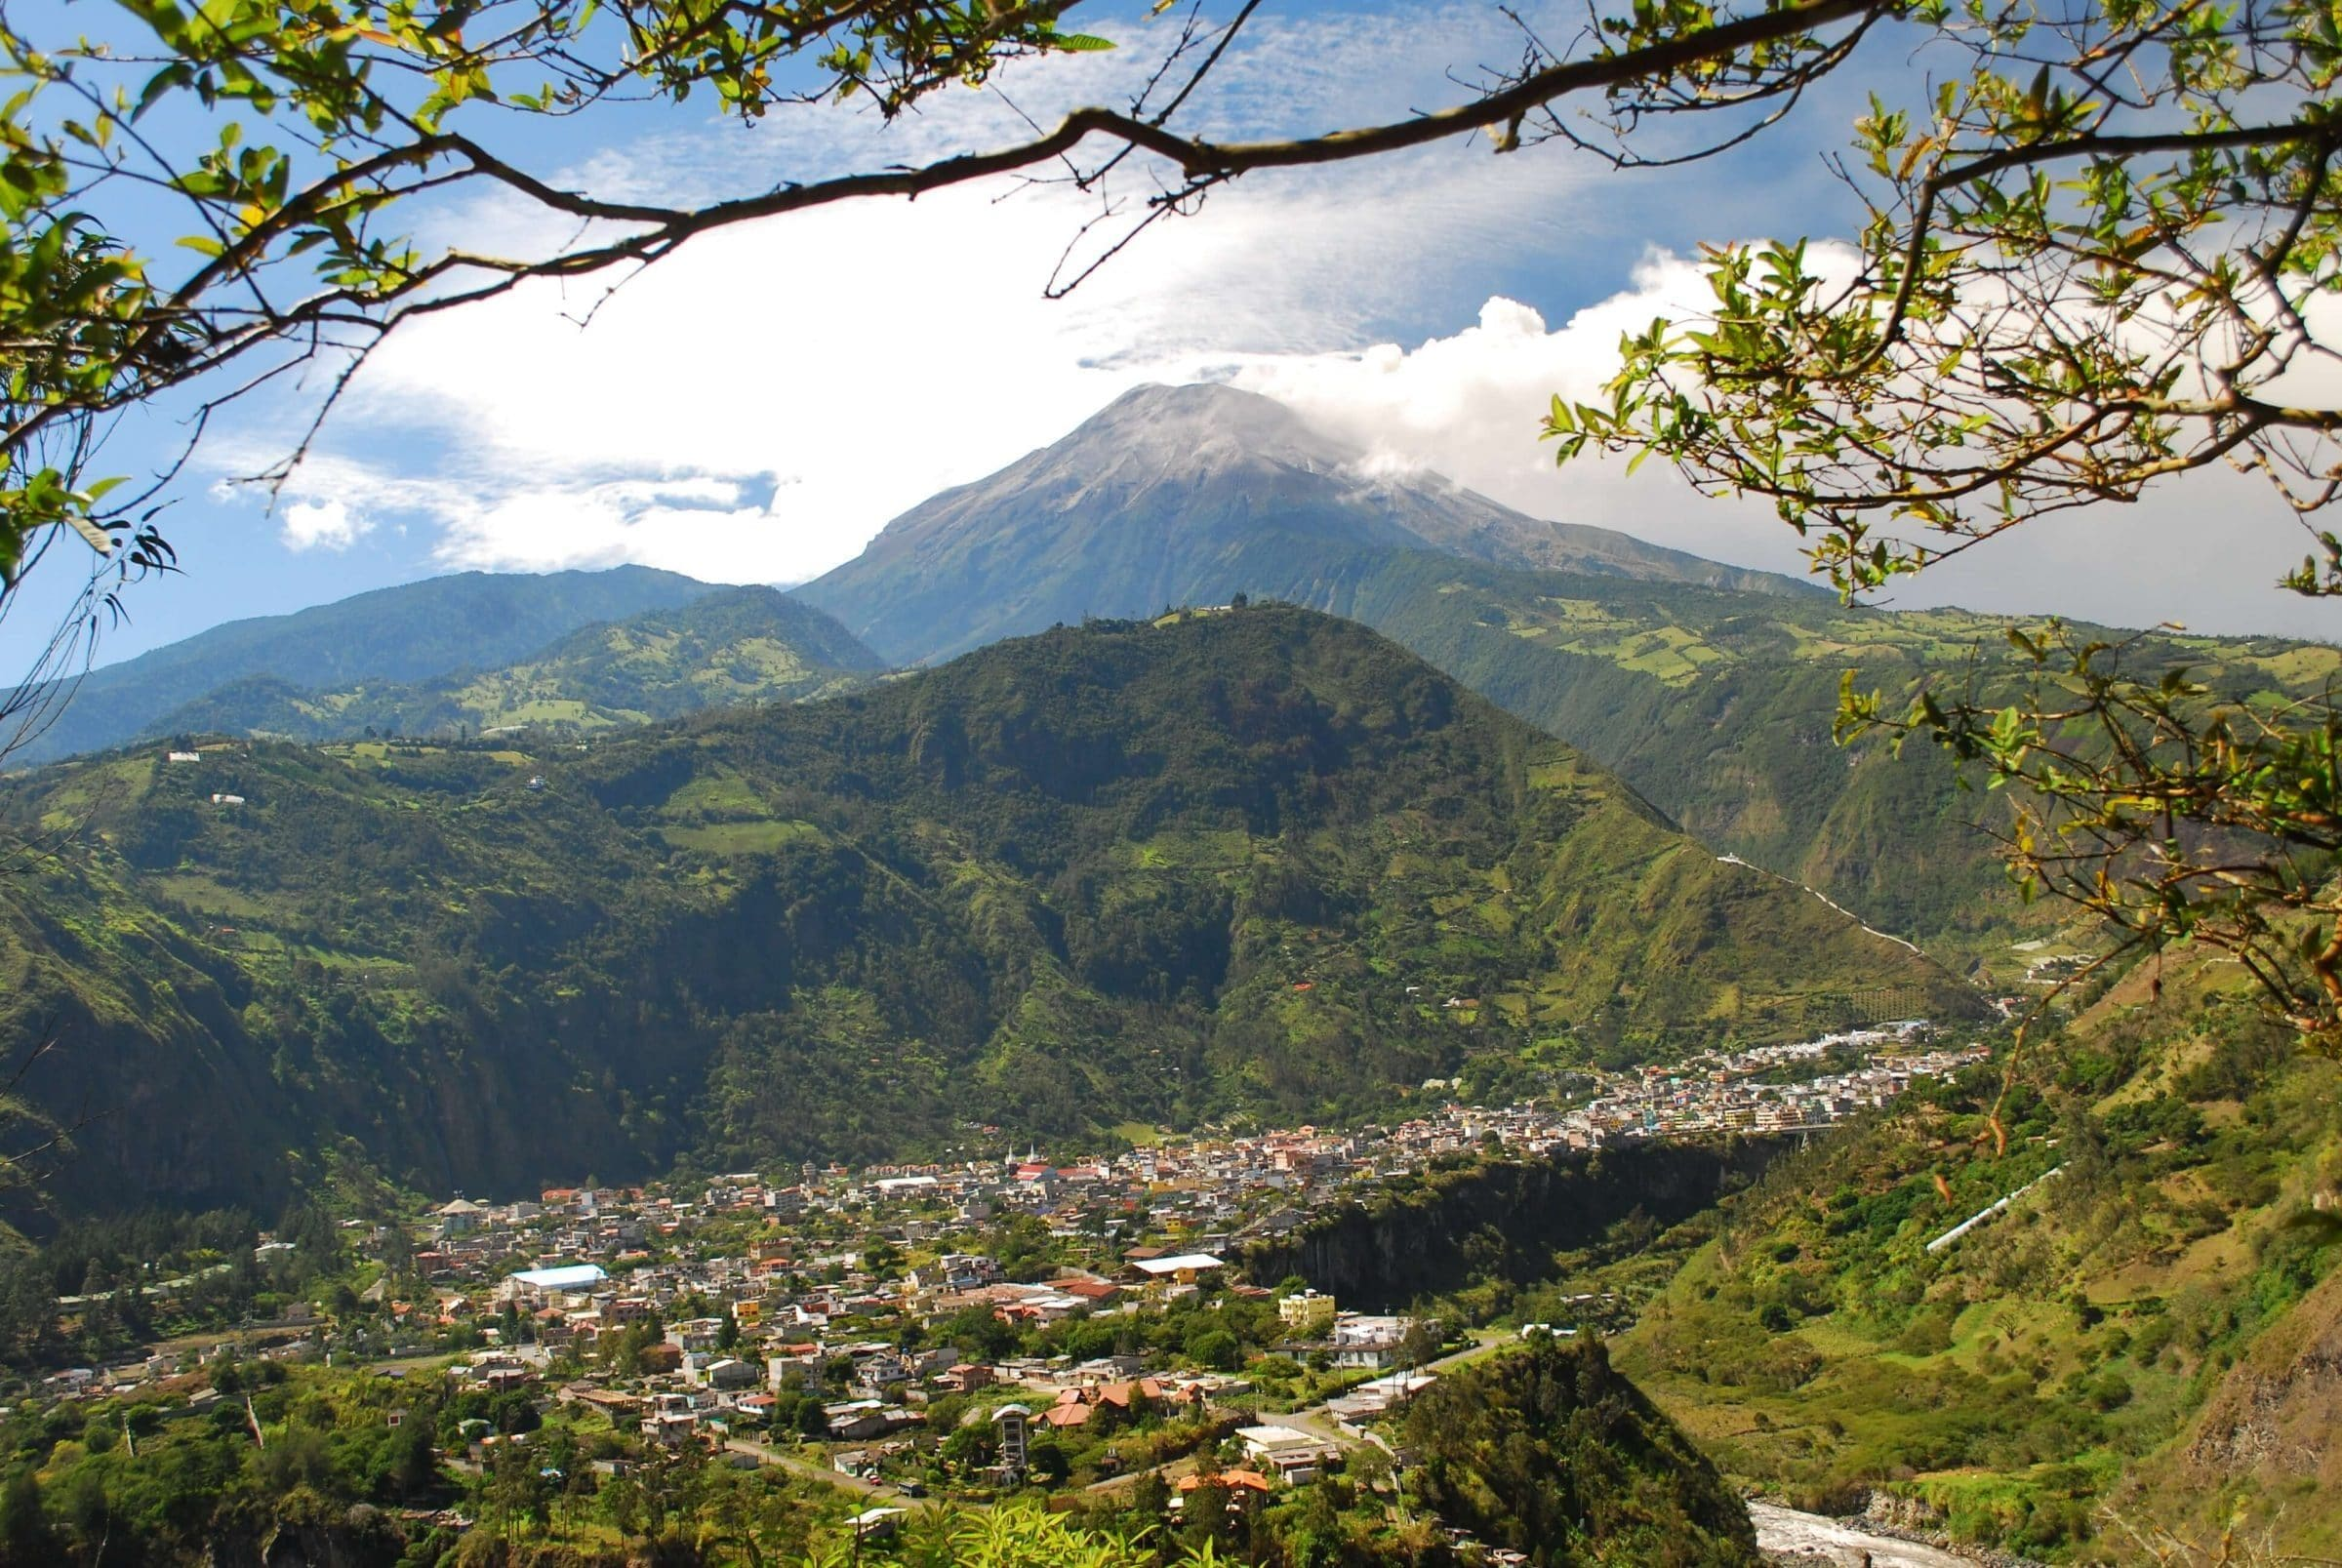 How long should you stay at Baños?